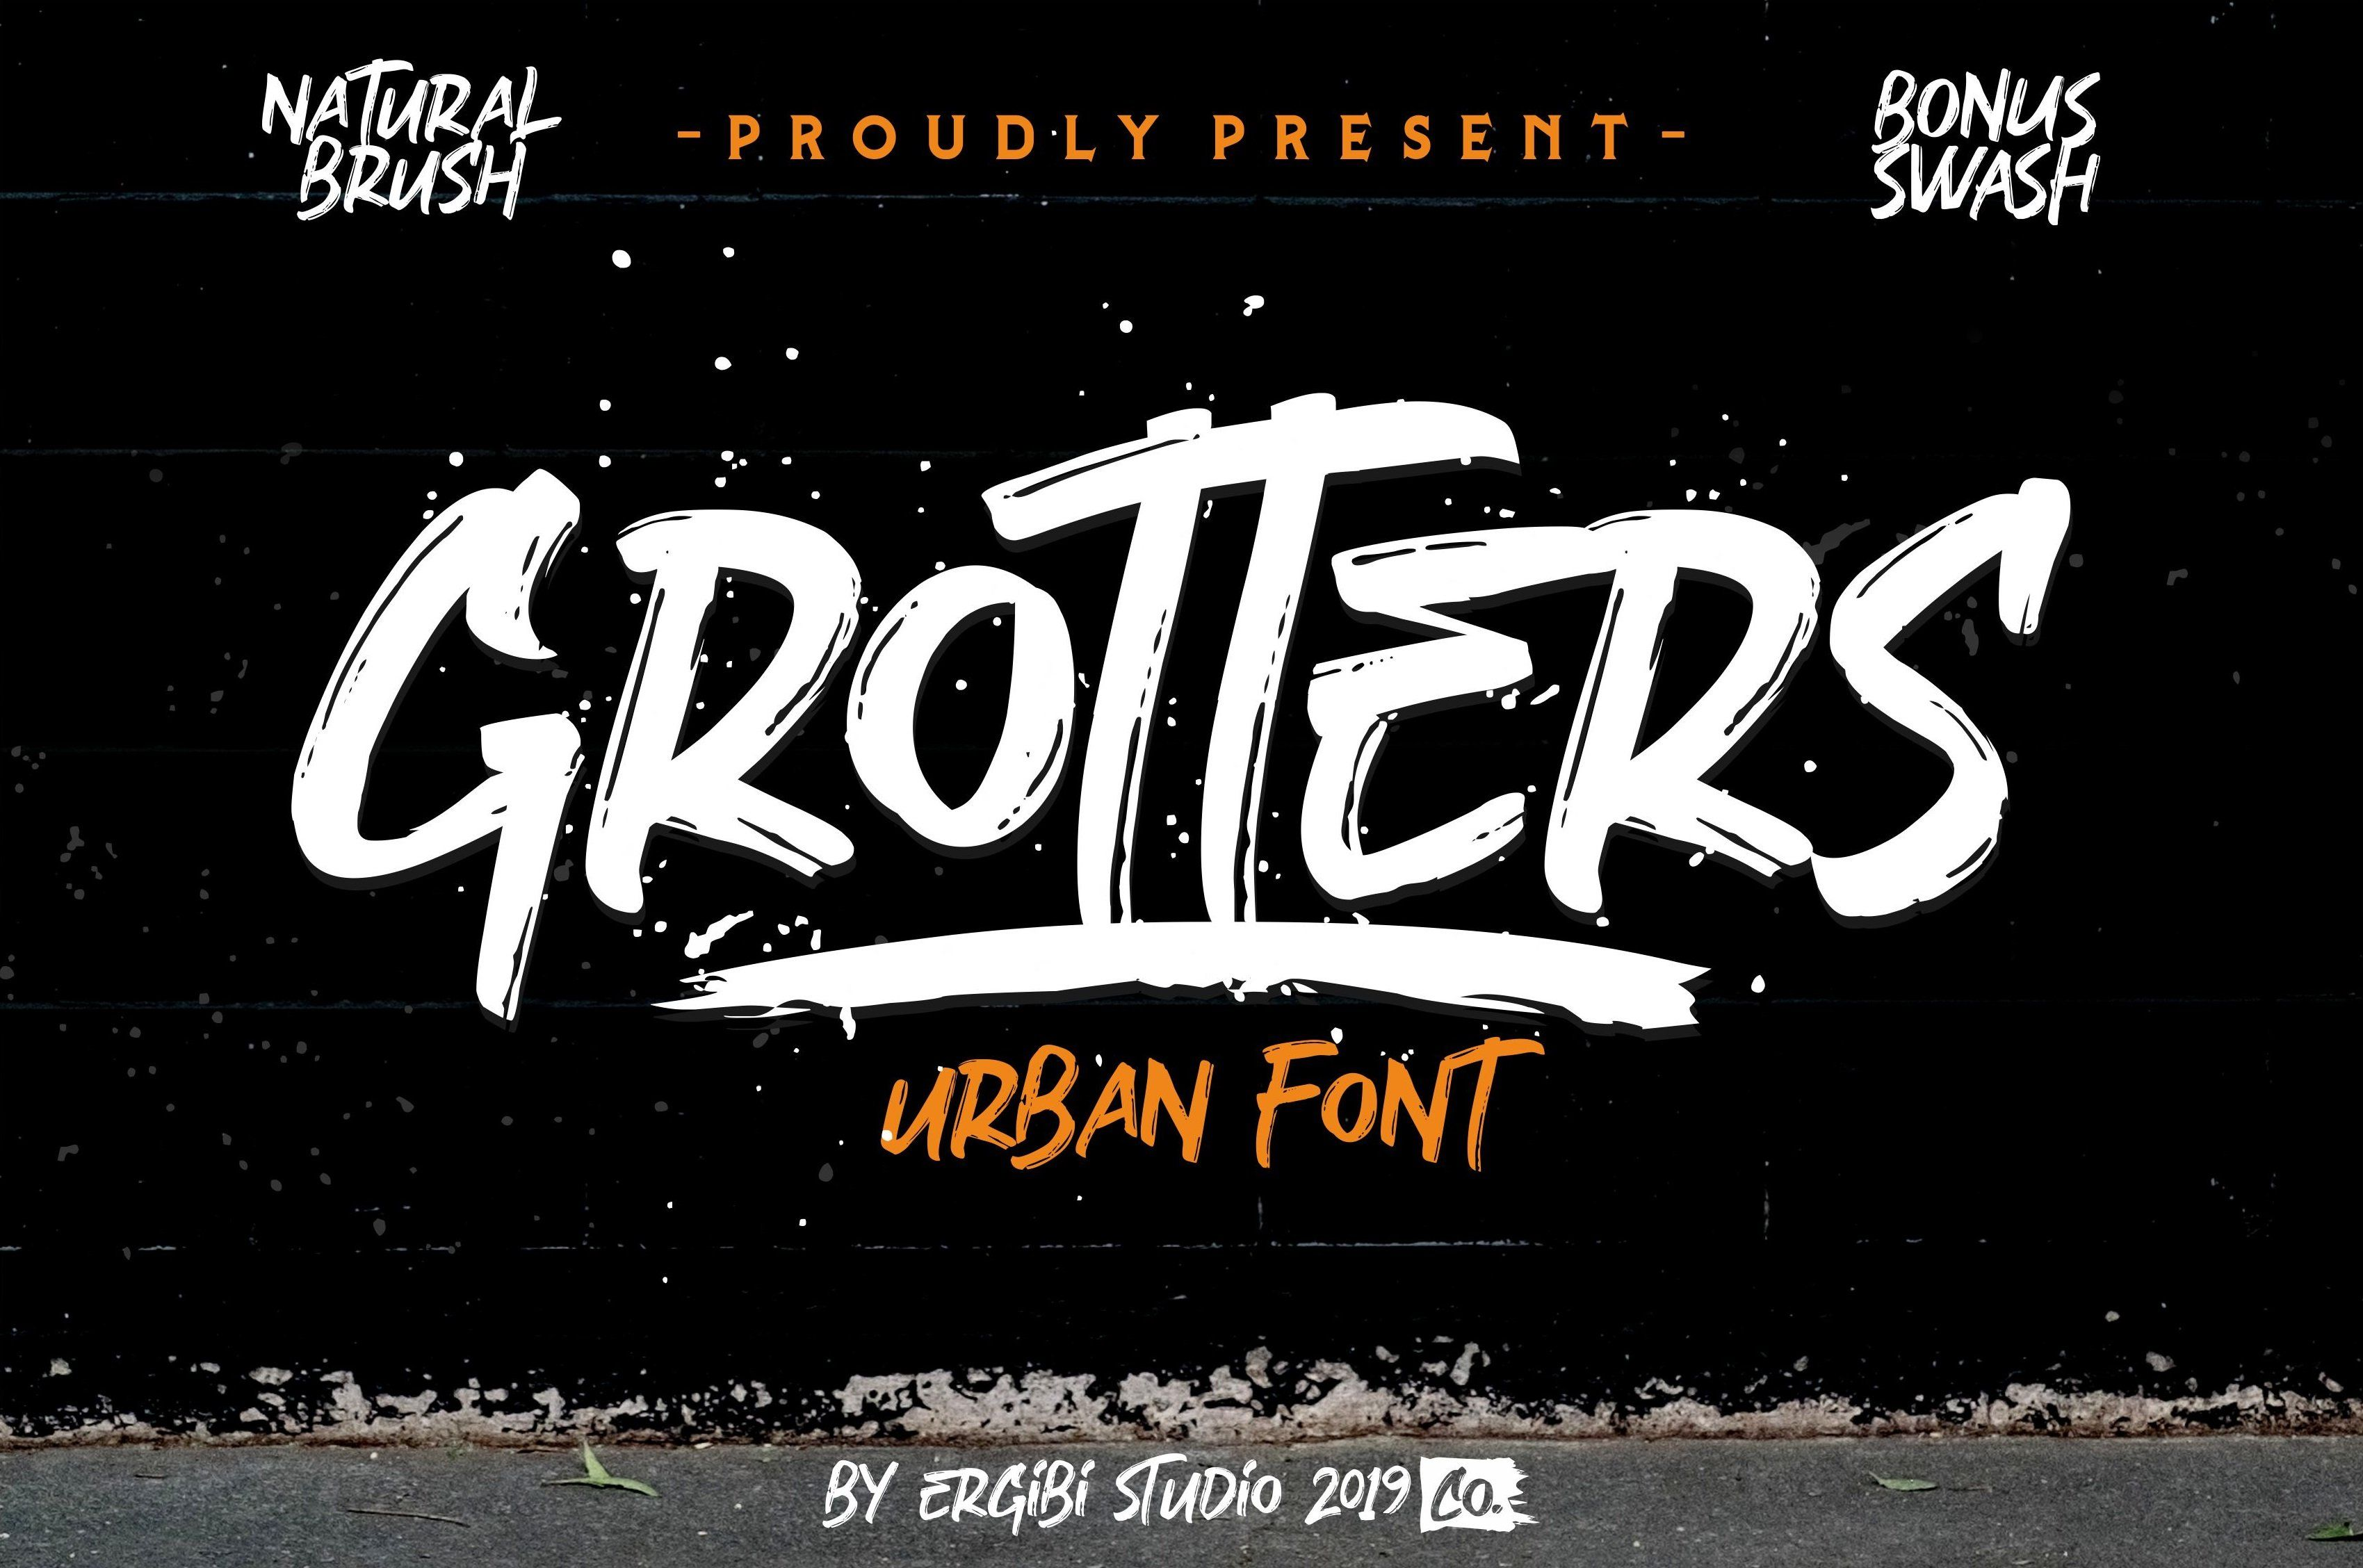 Grotters Urban Font Brush Font Fonts Design Urban